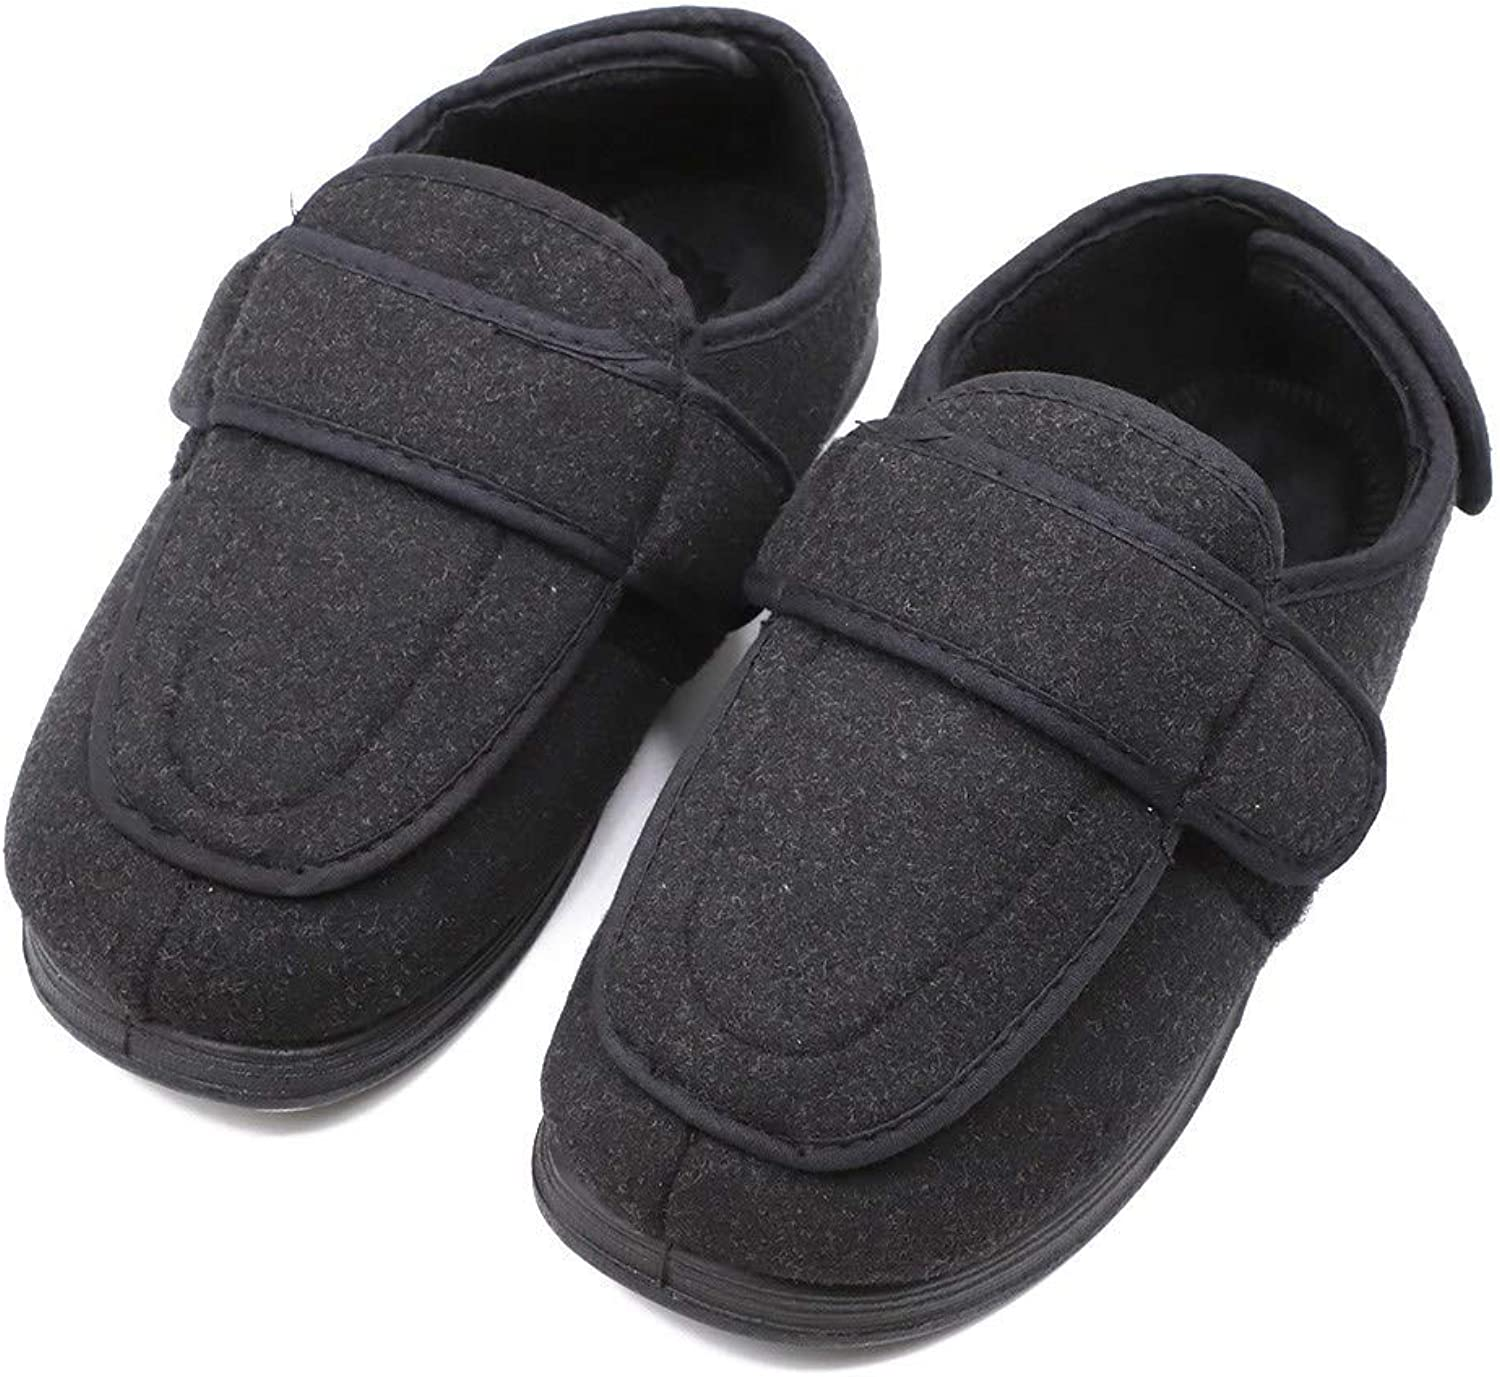 Rong Men's Memory Foam Slippers Diabetic Arthritis Edema Swollen Adjustable Extra Wide House shoes Indoor Outdoor